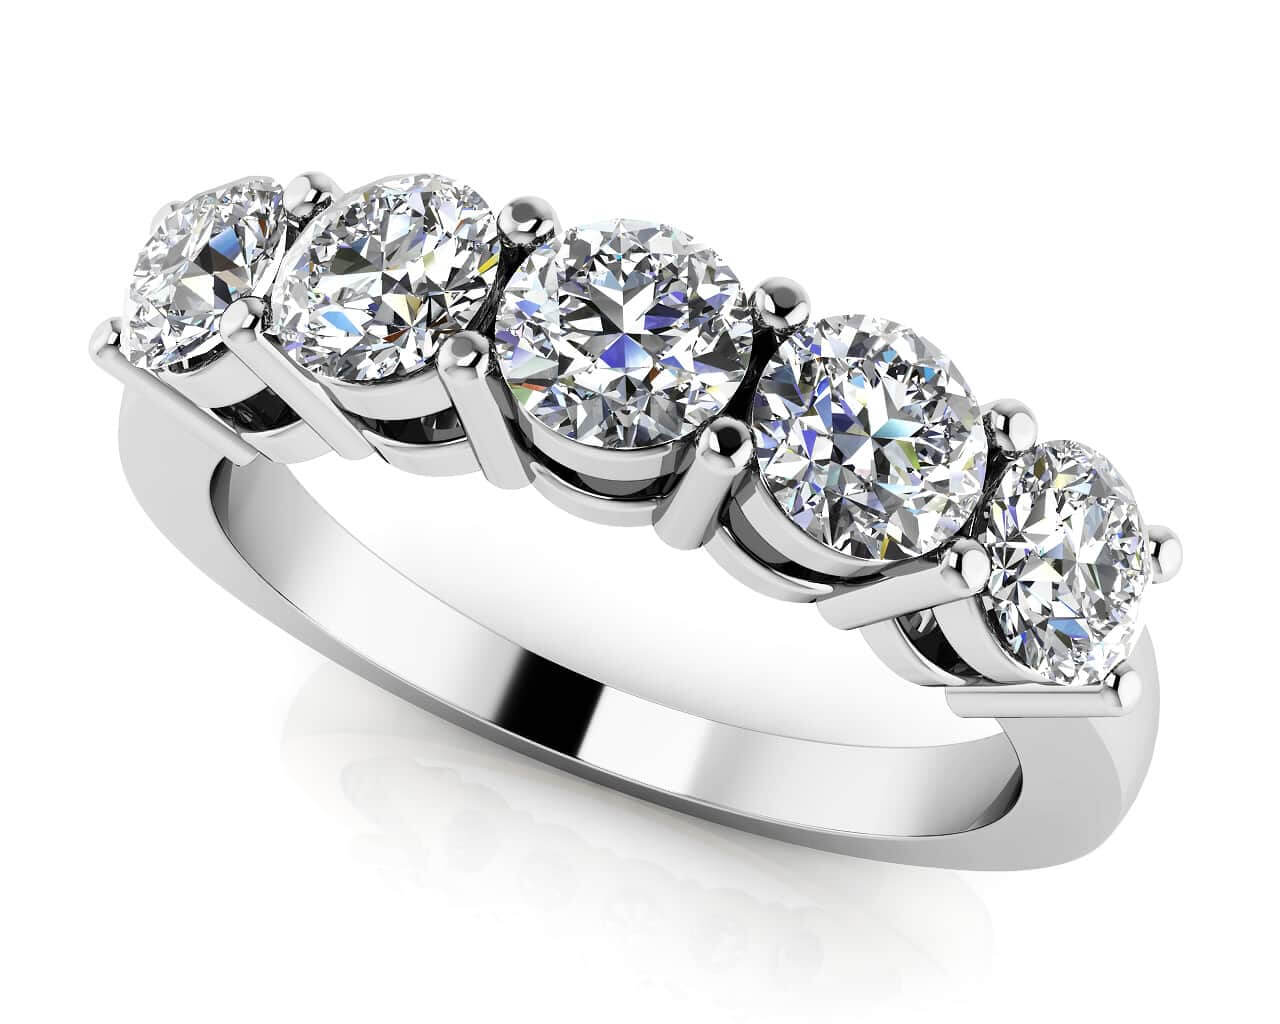 jewelry collection - Create Your Own Wedding Ring